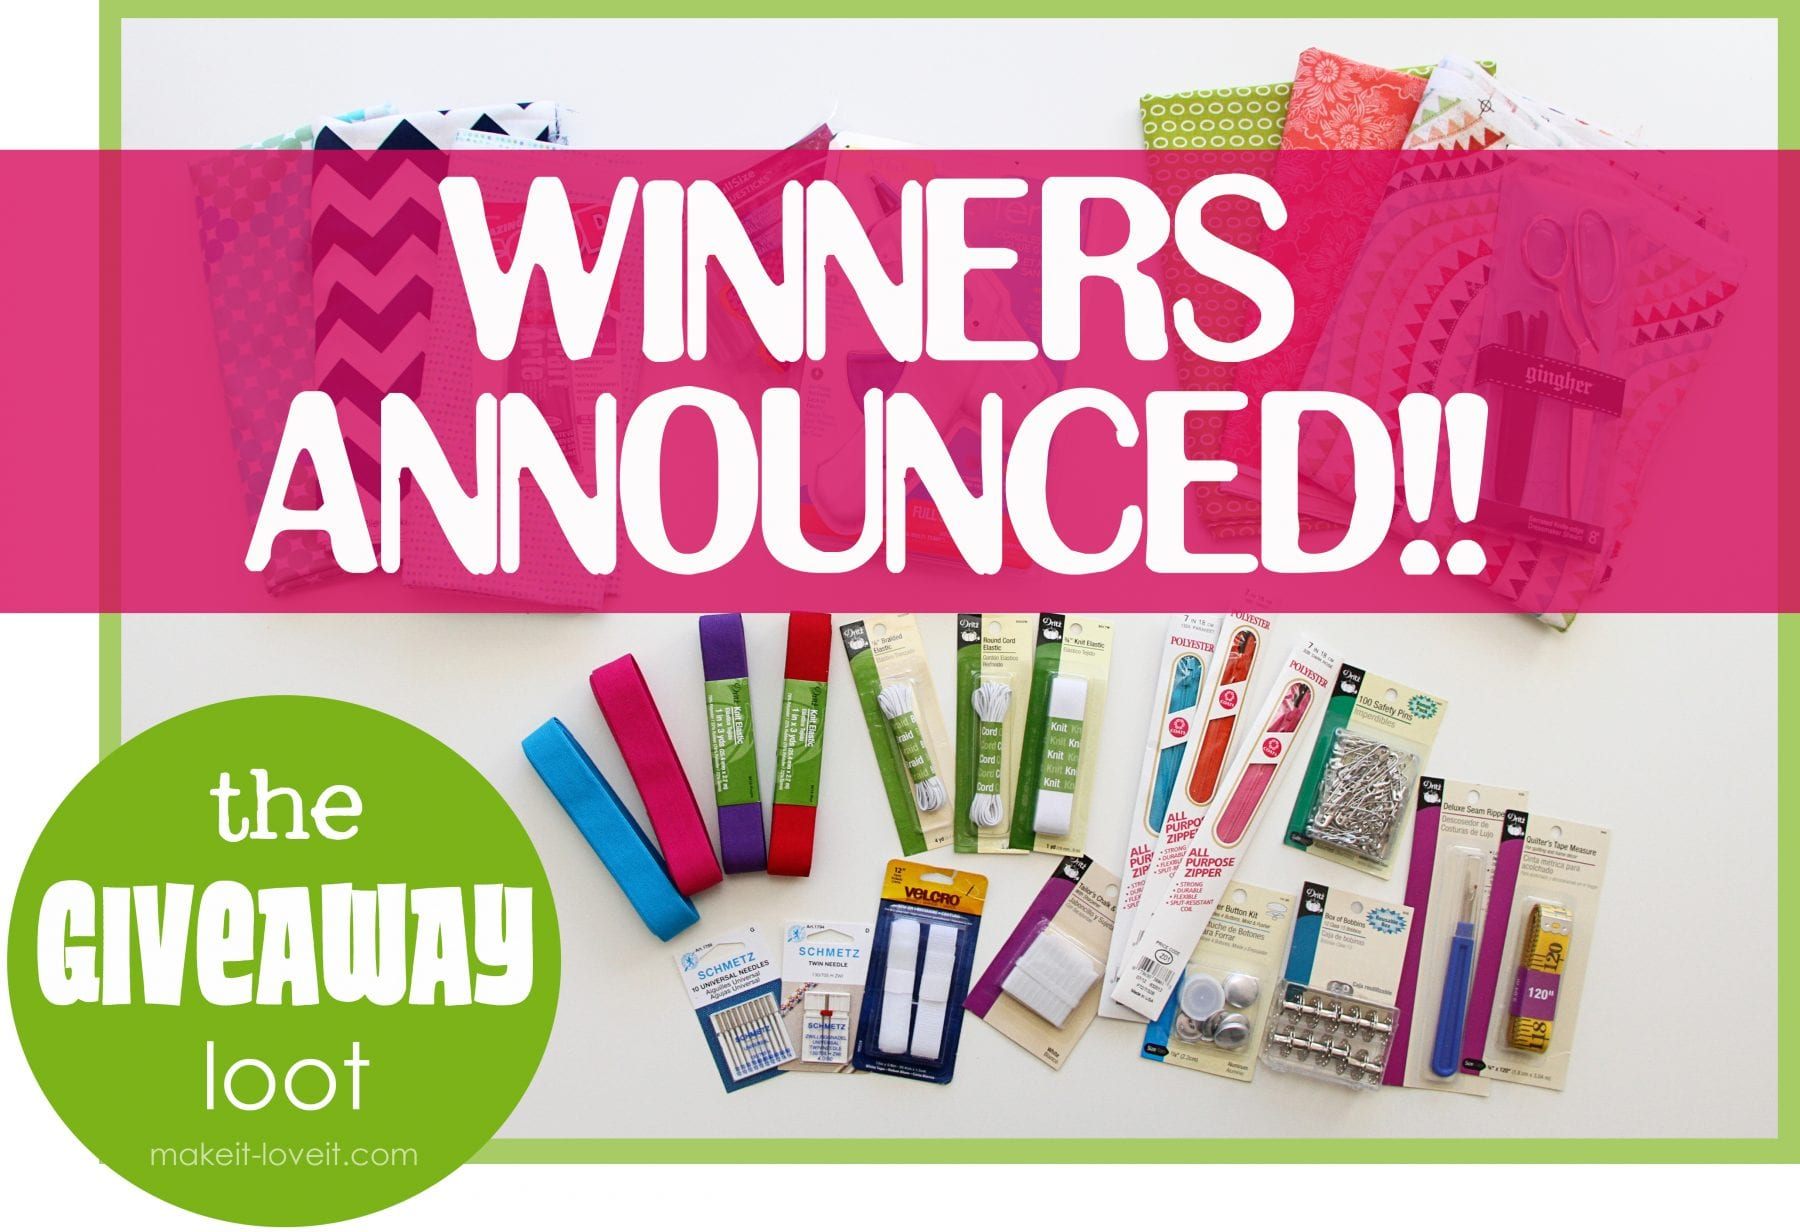 Giveaway winners announced: sewing/crafting tools